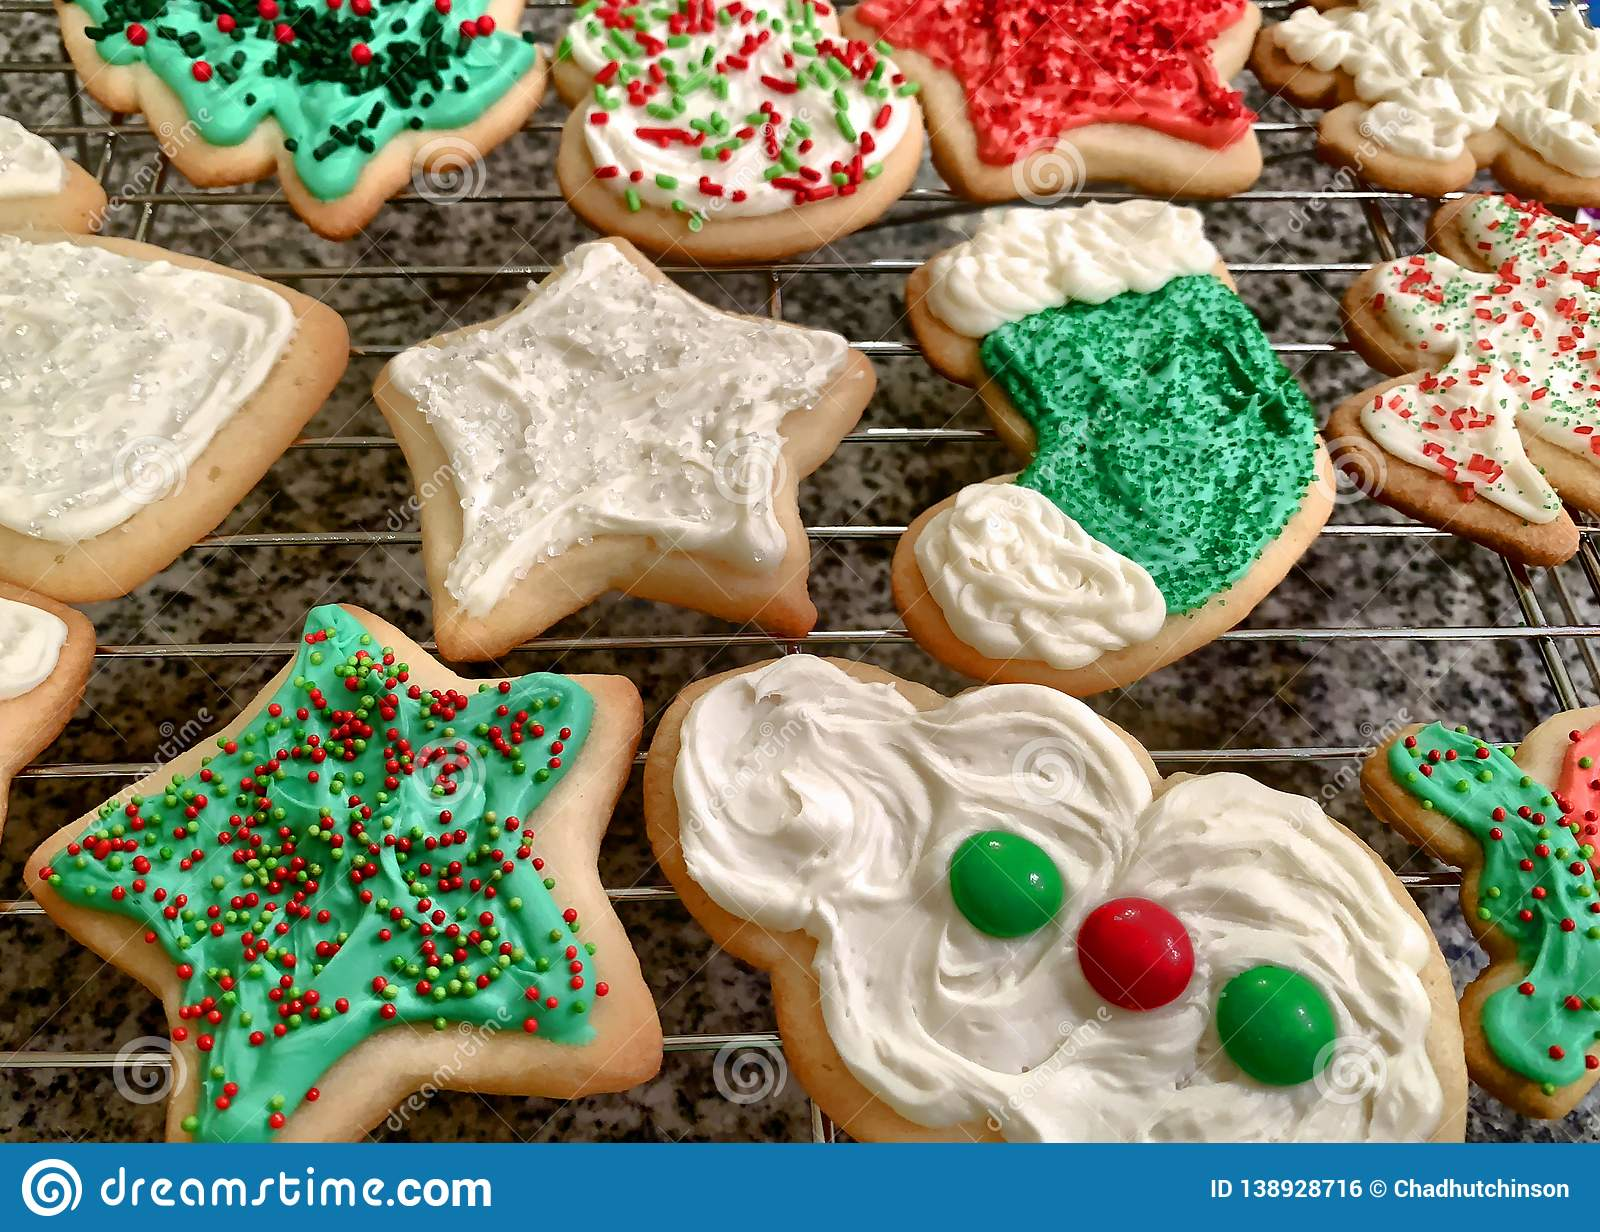 Colorfully Iced Homemade Christmas Cookies On A Wire Rack Stock Photo Image Of Snowman White 138928716